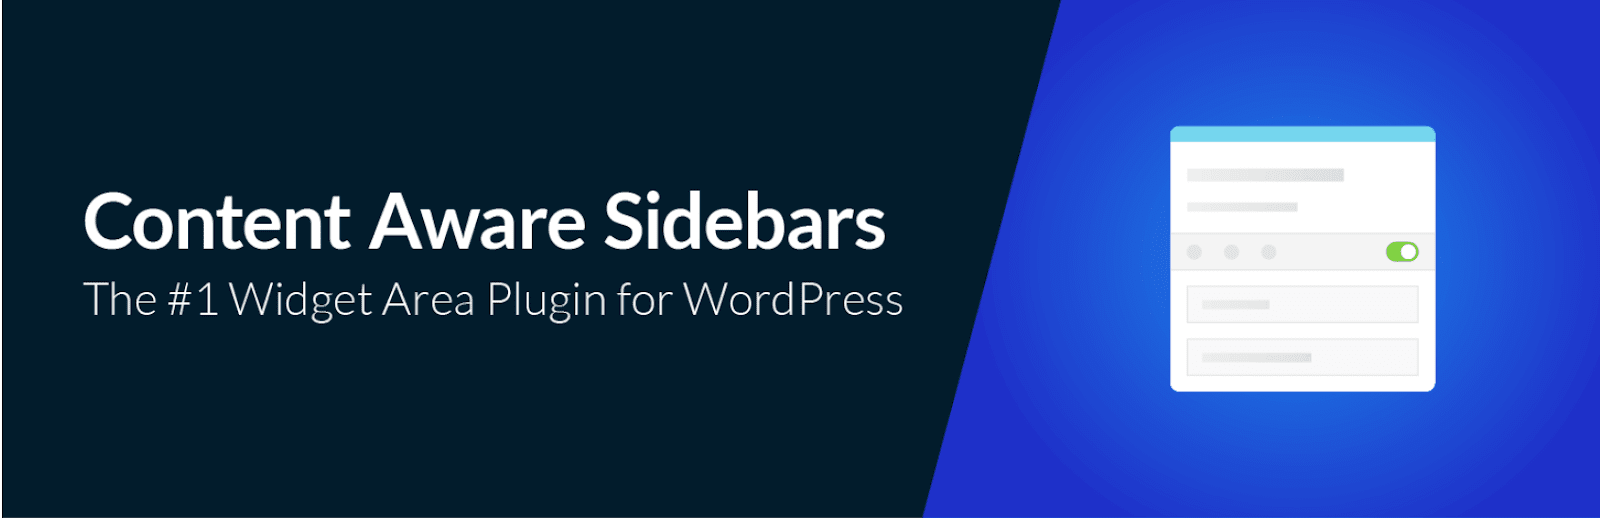 Conteúdo Aware Sidebar WordPress plugin